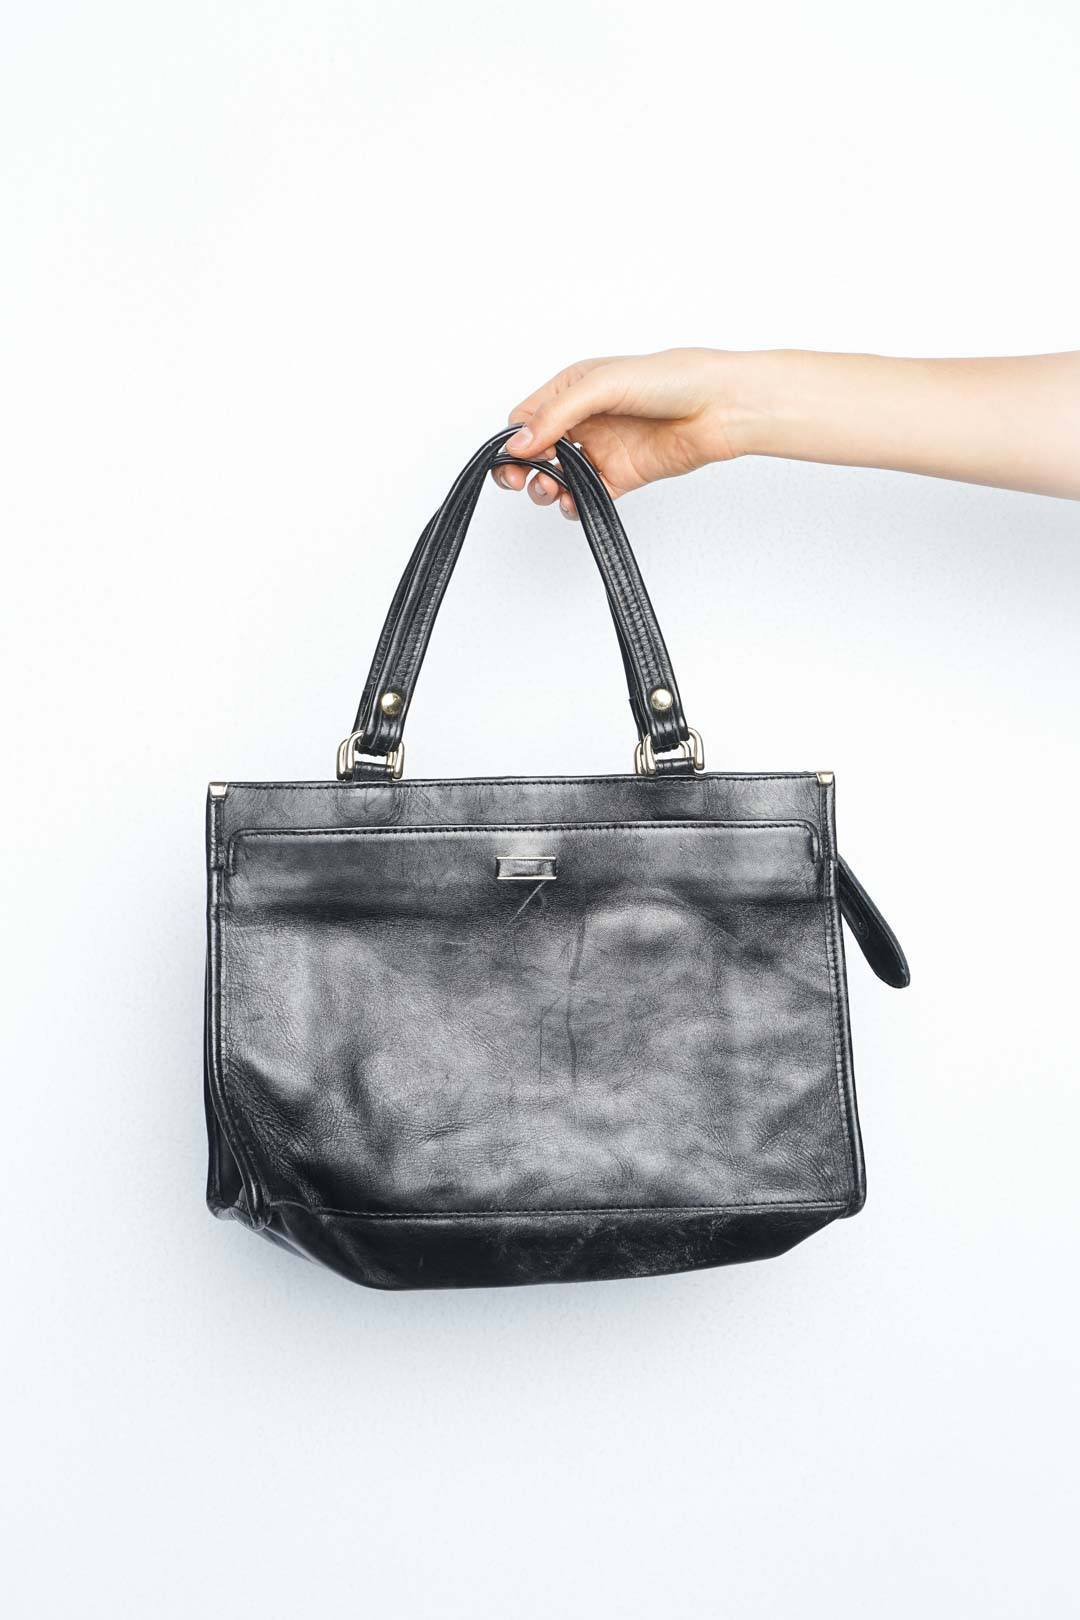 Black Leather Bag - VinoKilo.com